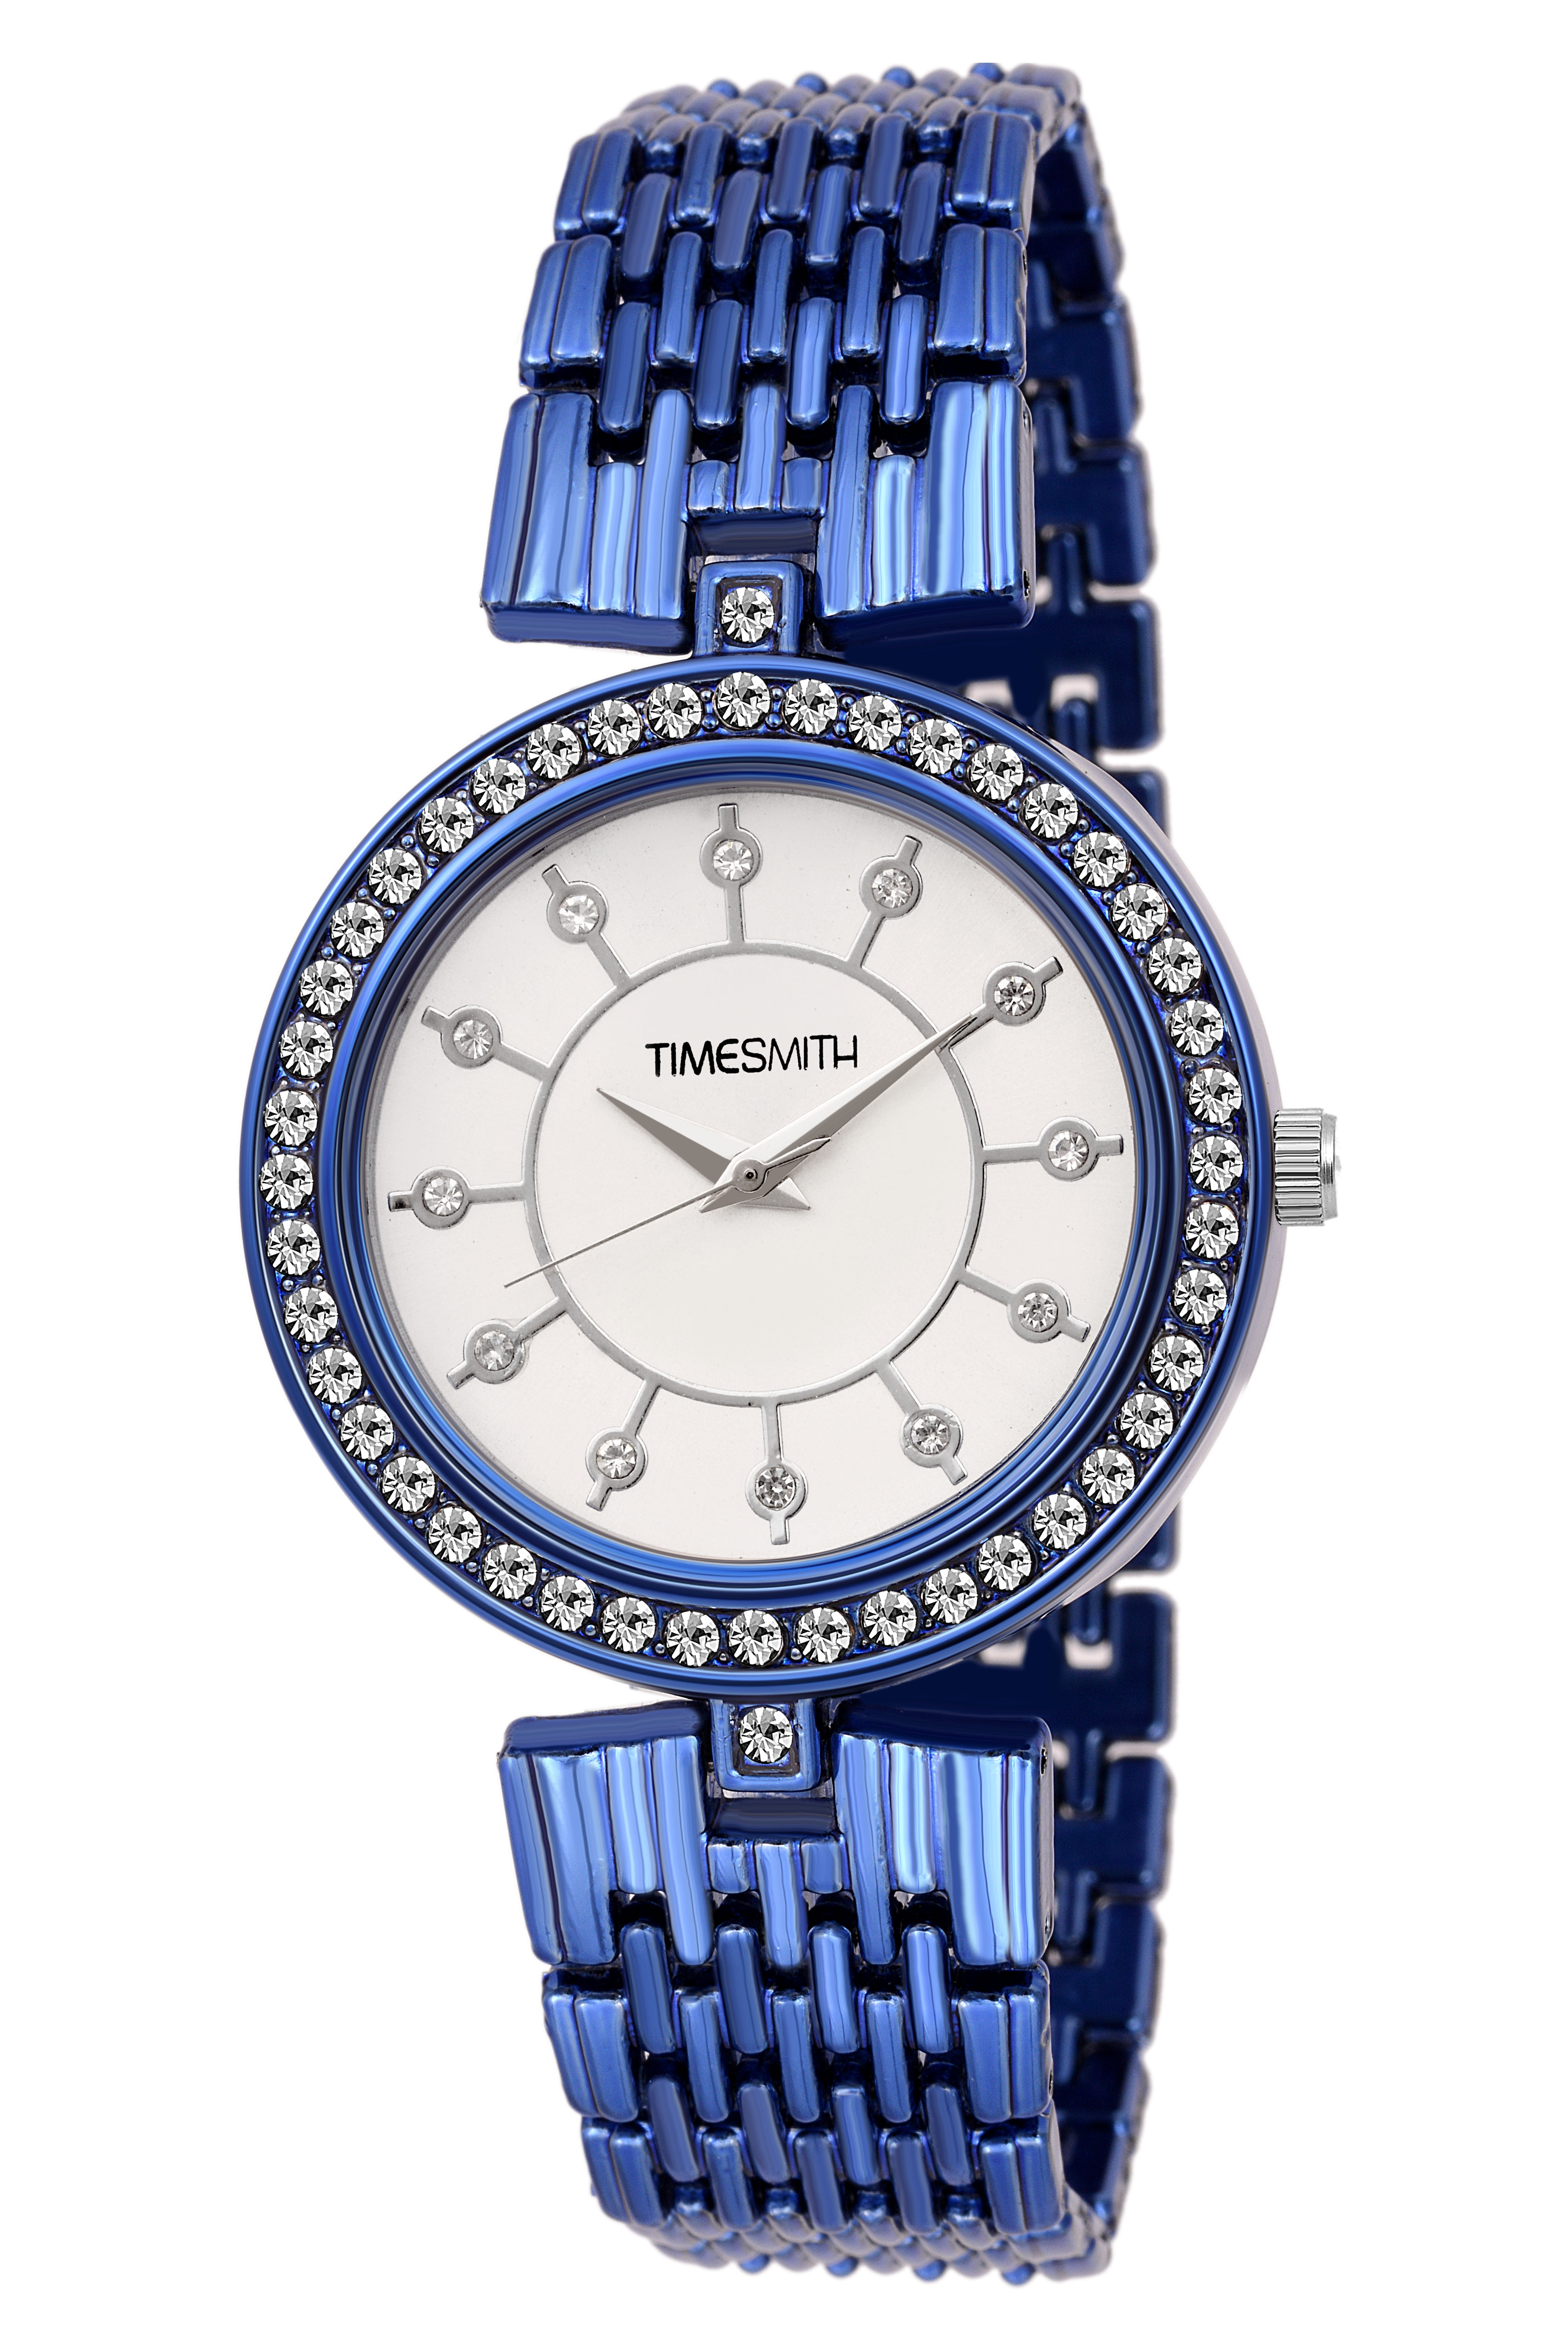 Timesmith   Timesmith White Dial Blue Stainless Steel Strap Branded Analog Watch for Women TSC-047